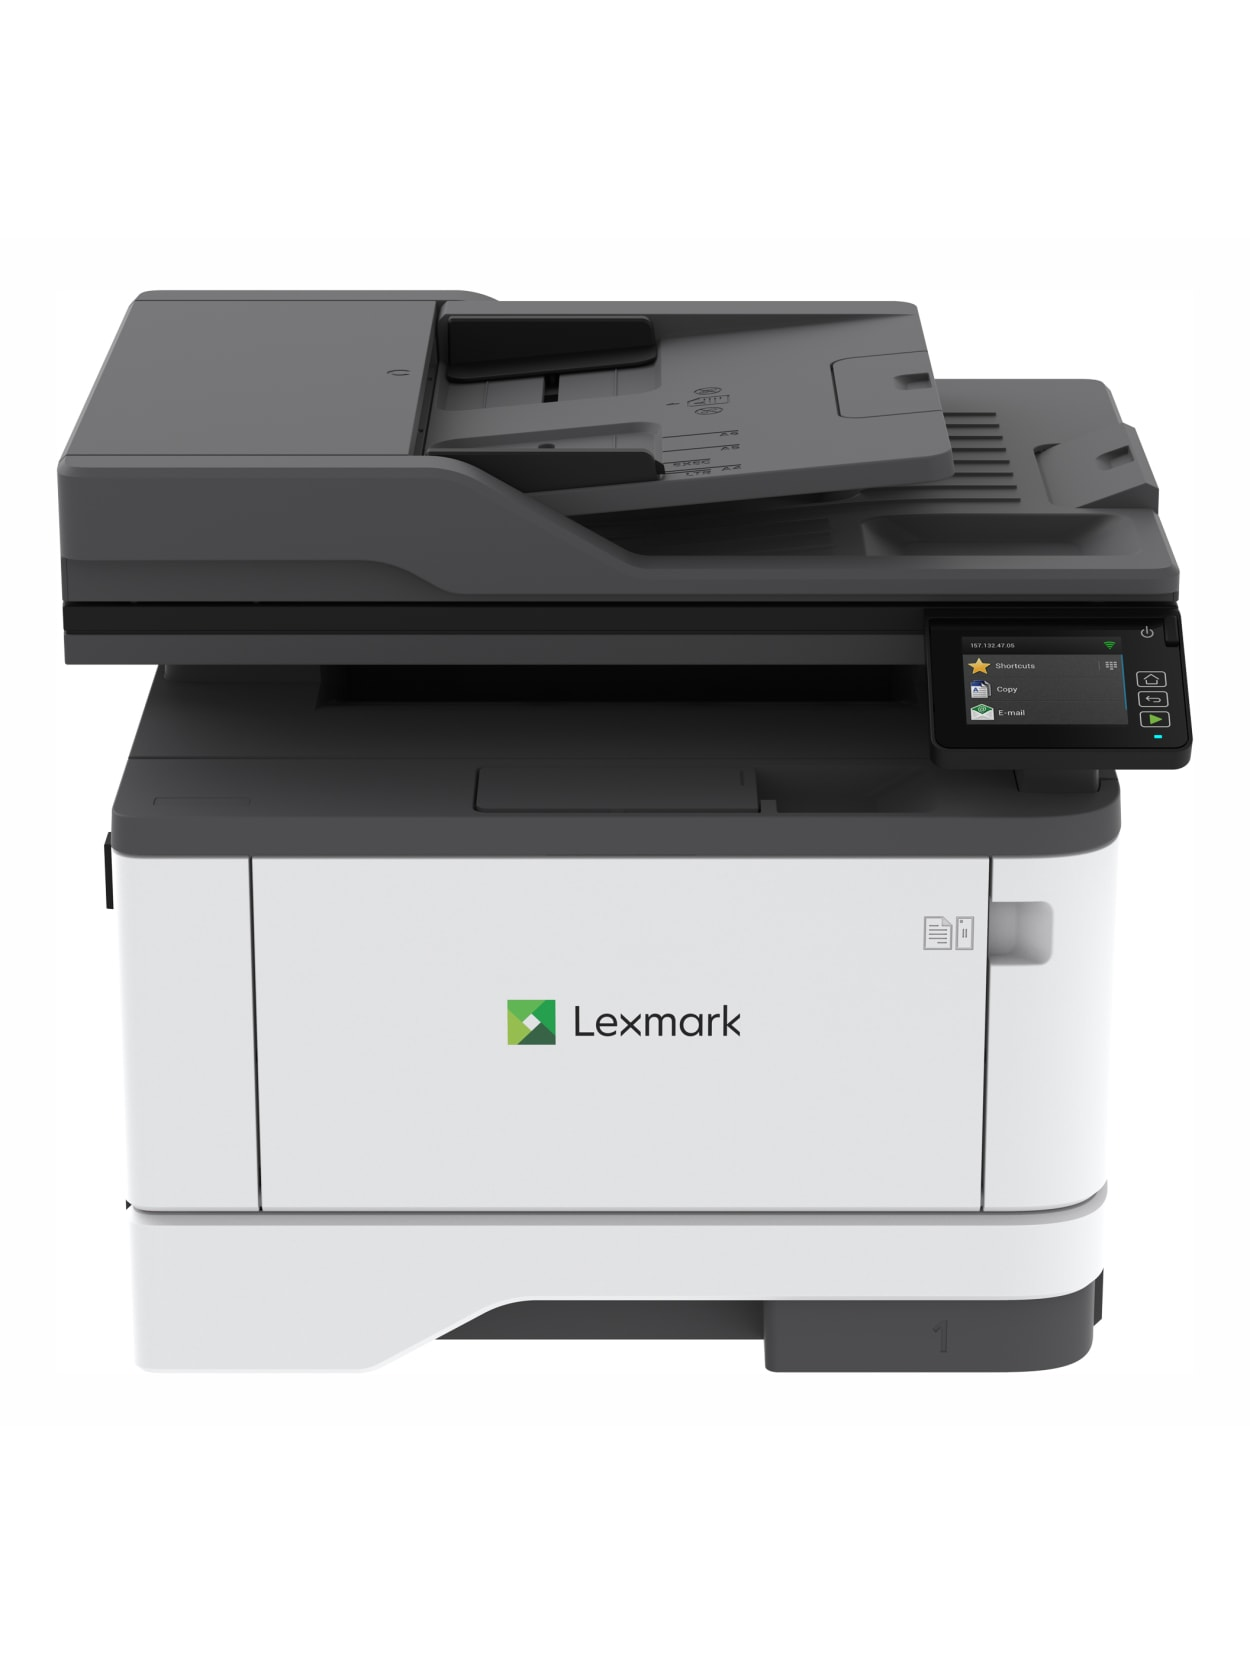 Lexmark MX431adn MFP Printer